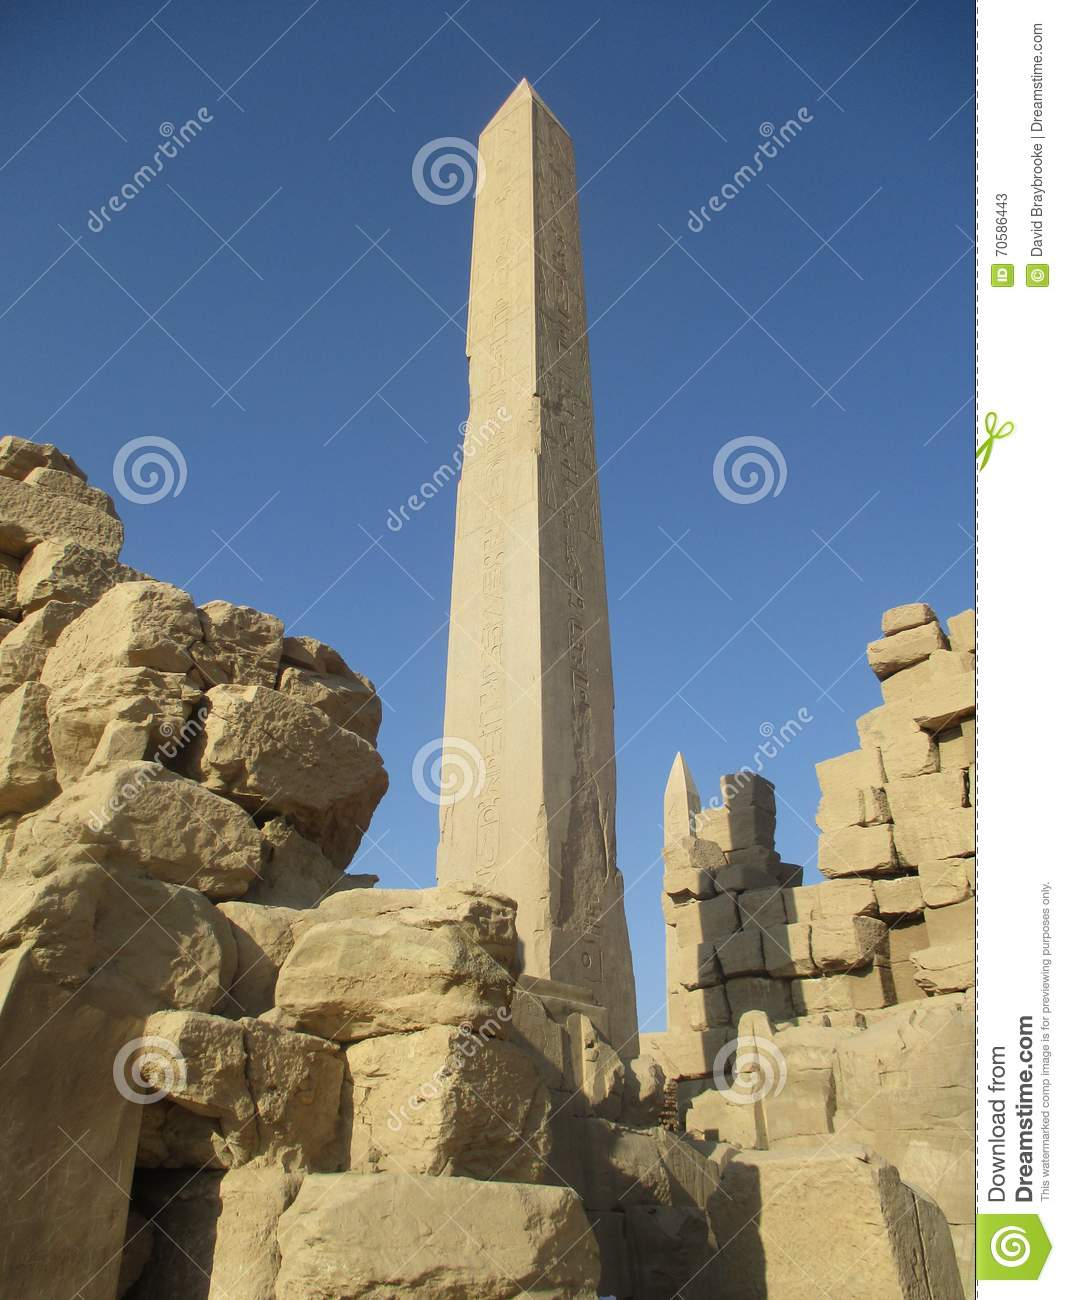 Karnak obelisk stone temple carving stock photo image